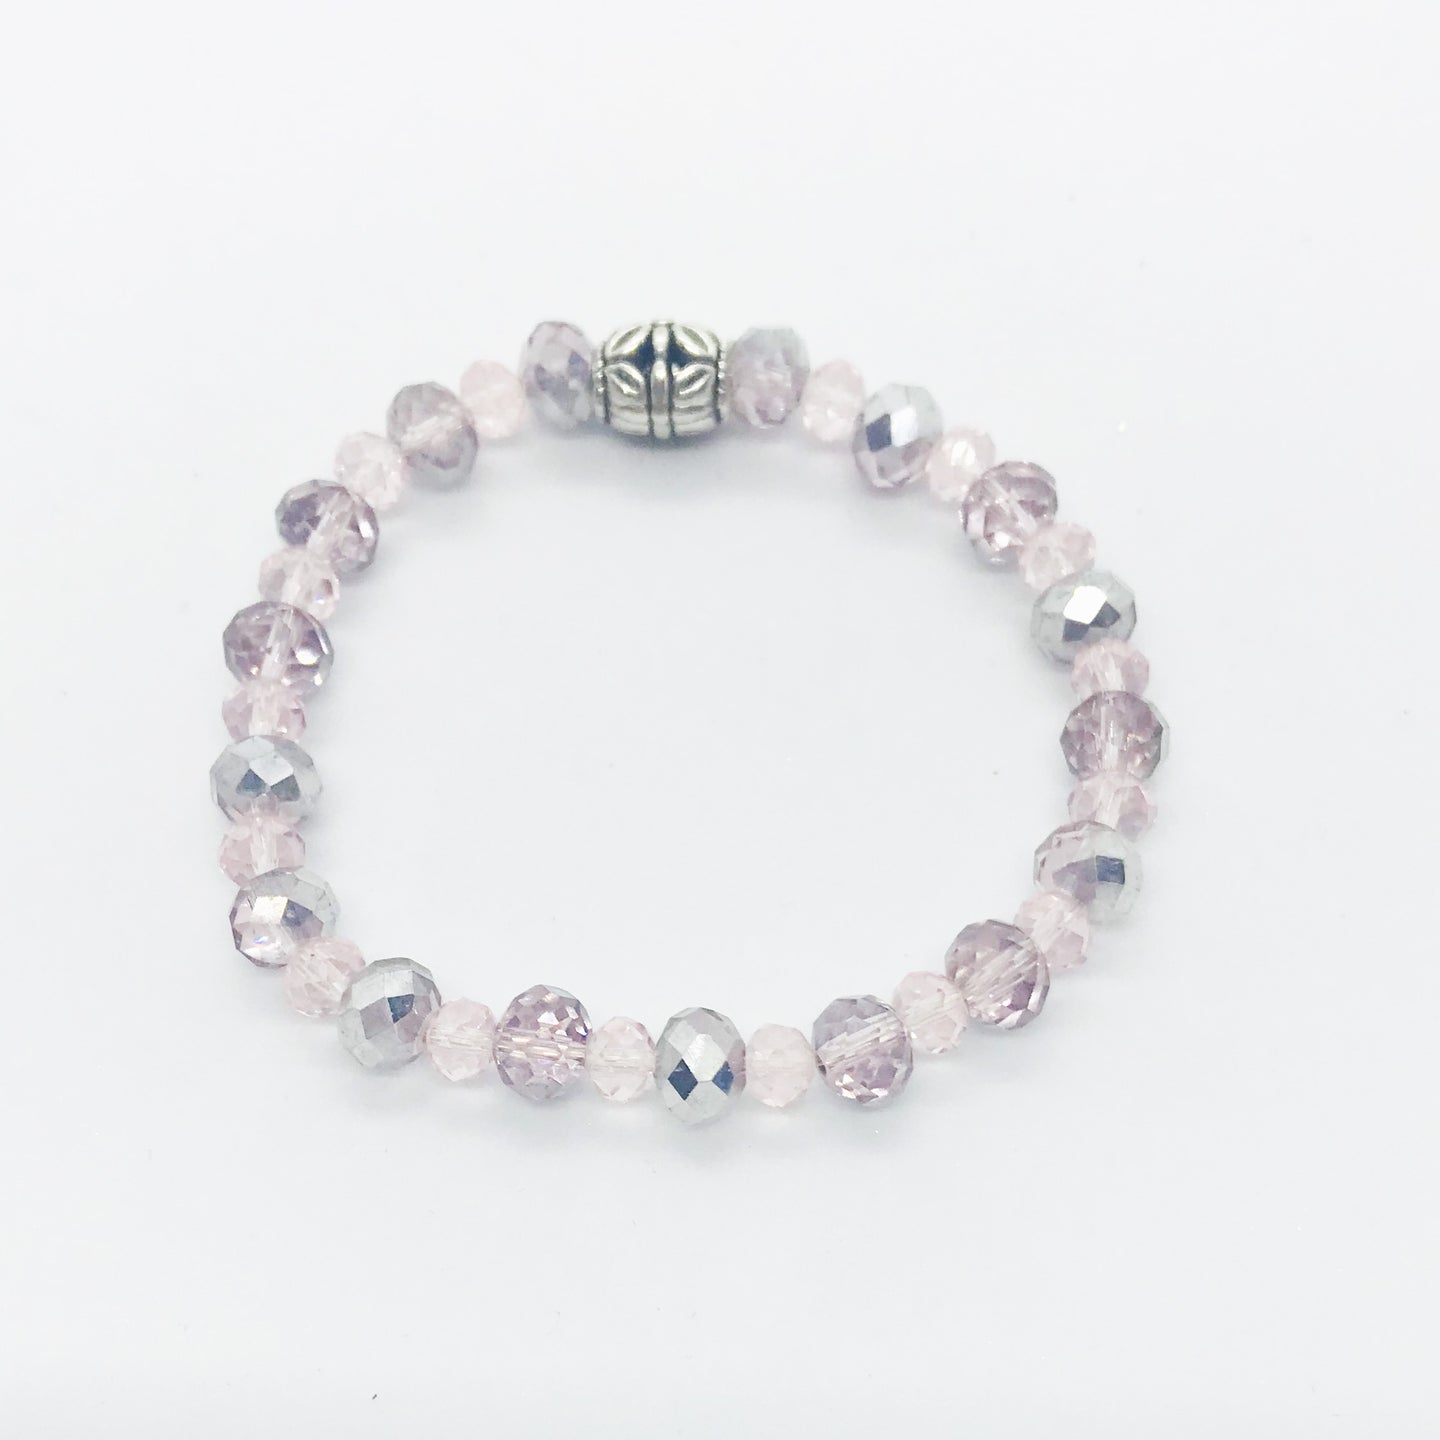 Glass Bead Stretchy Bracelet - B1070